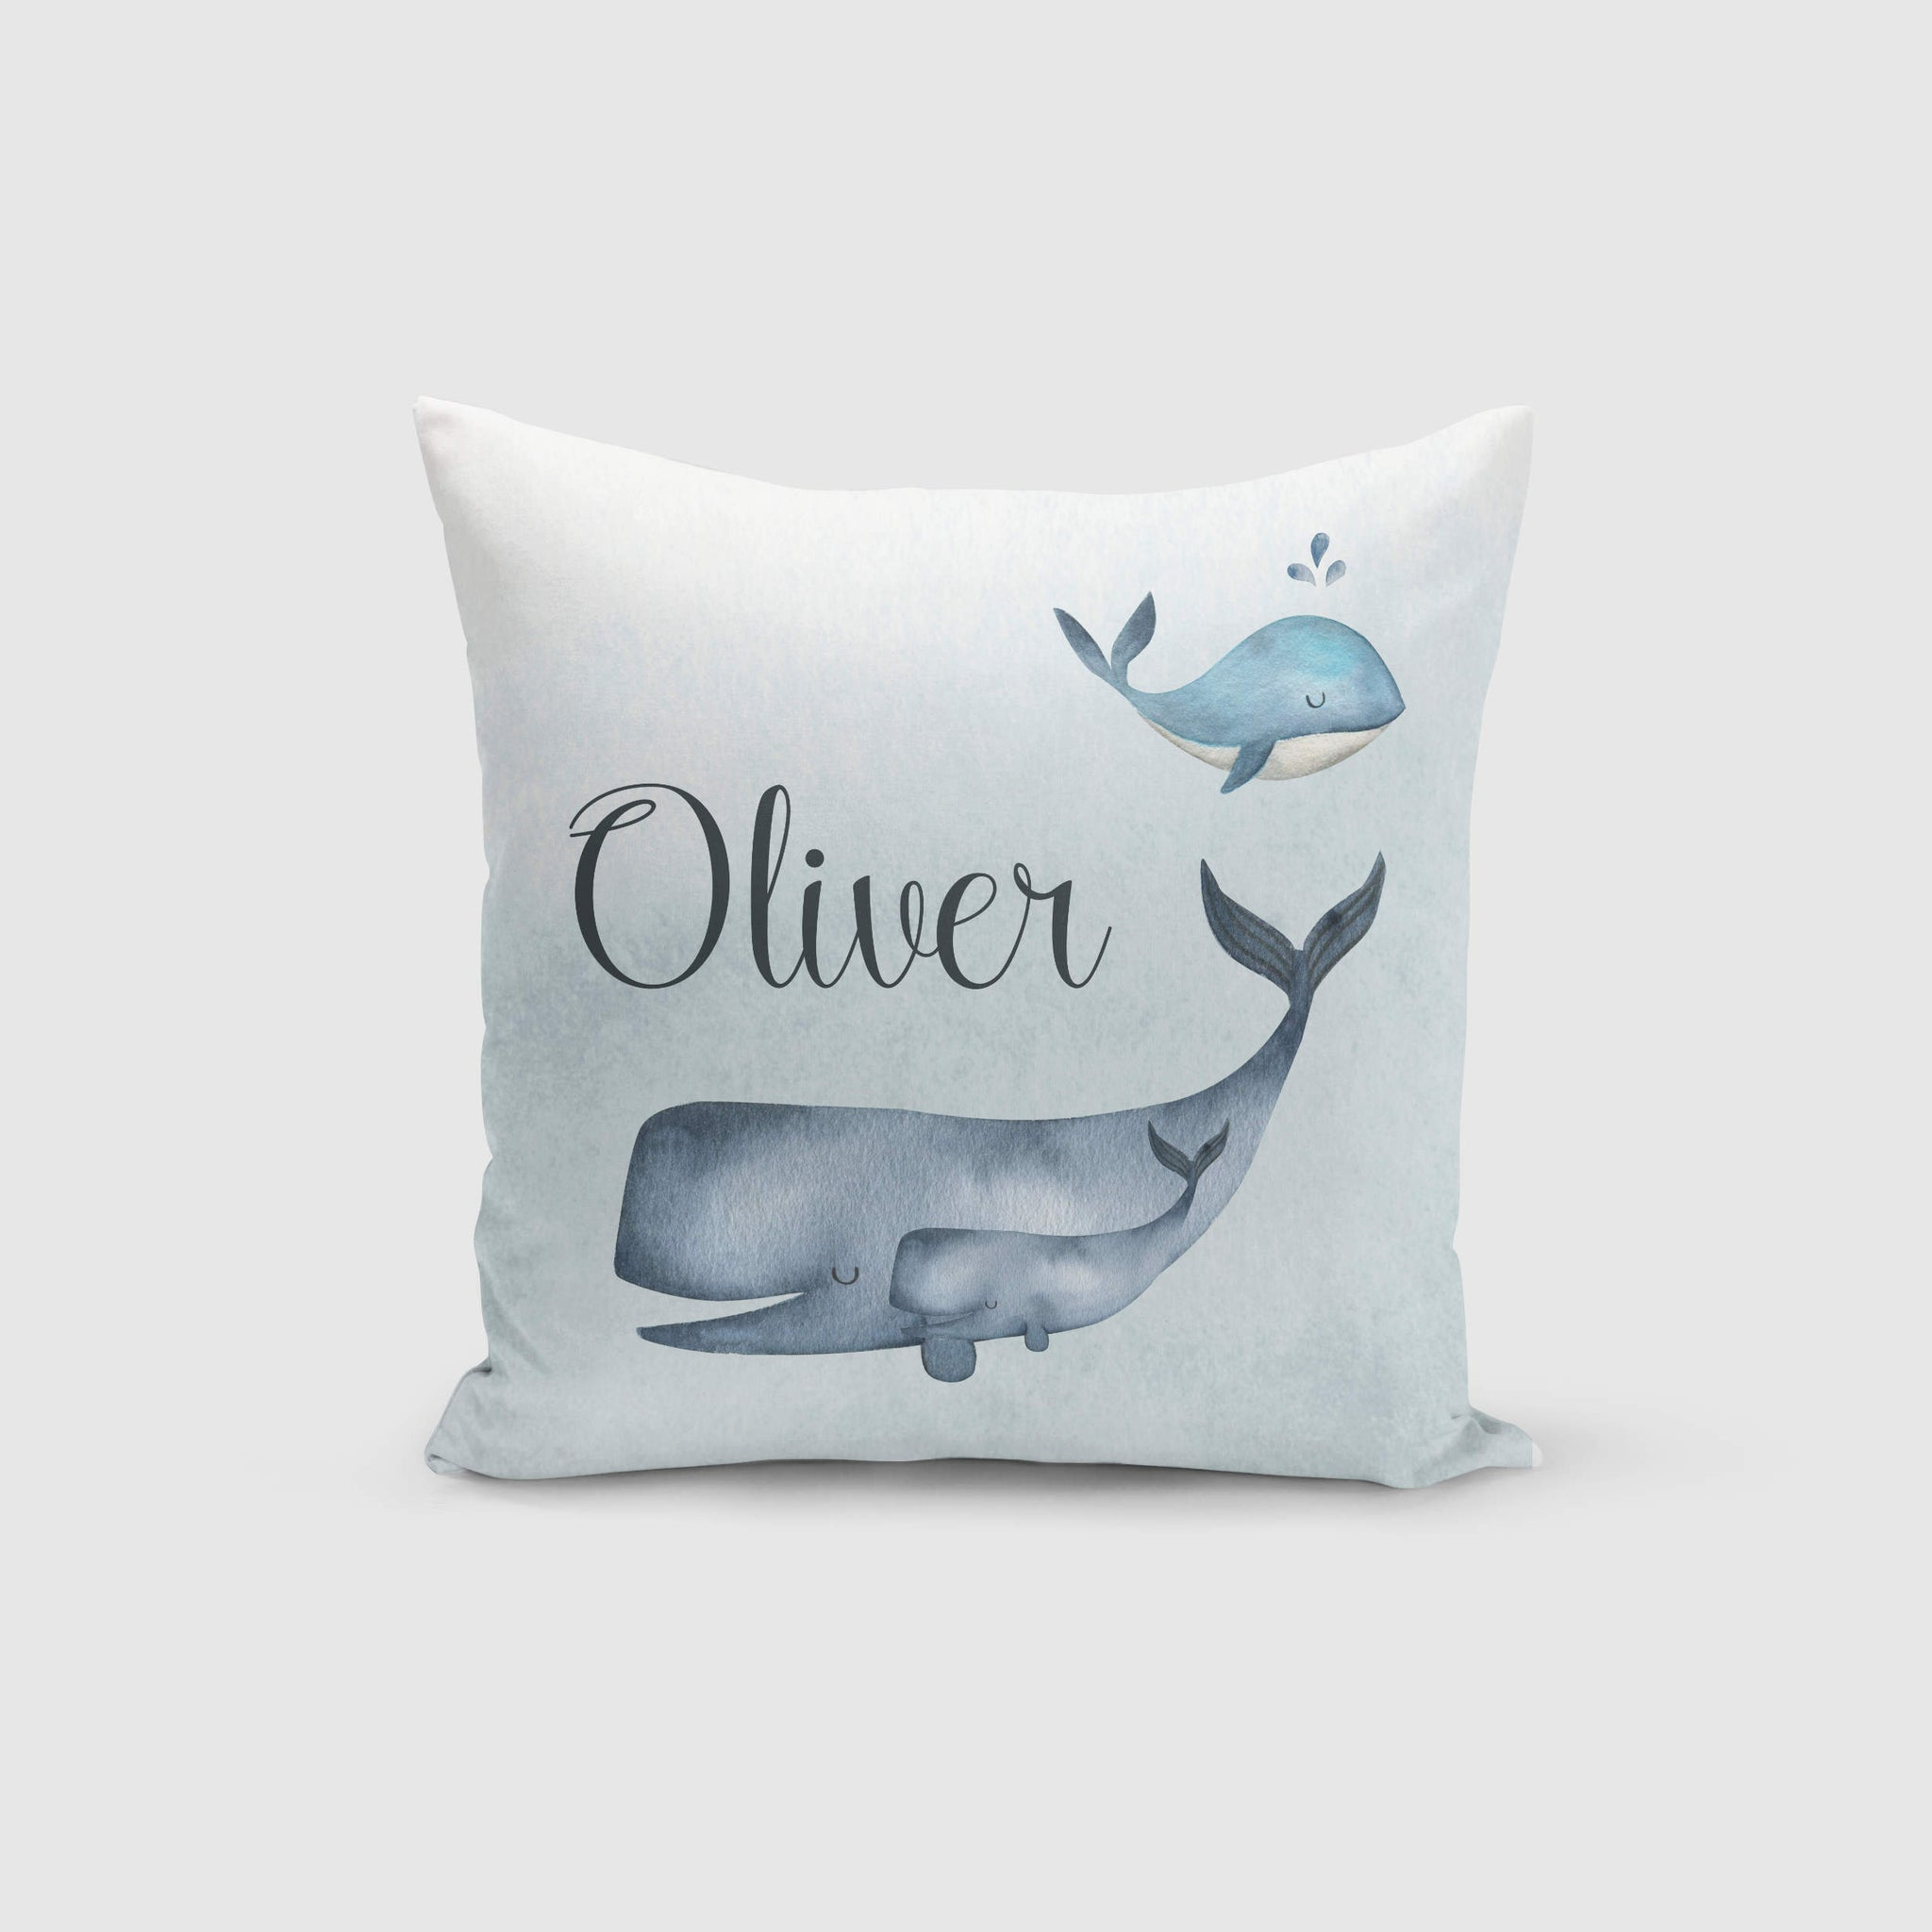 Personalised Cushion Cover Only - Whales